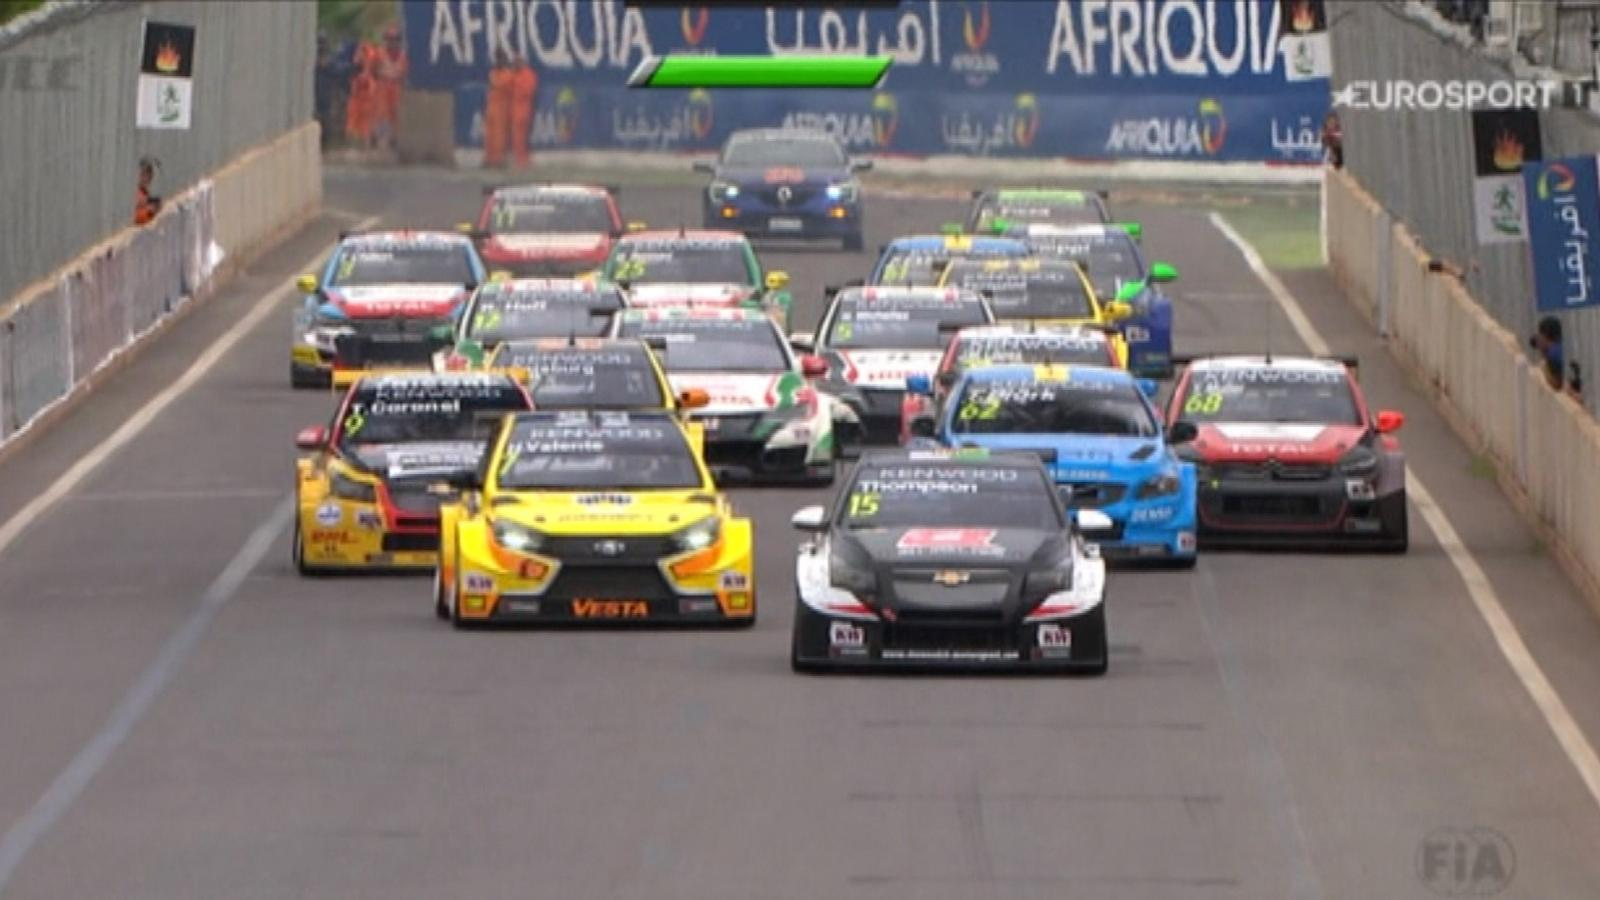 2c5ef32ec96a6 VIDEO - Tom Coronel se impone en la Carrera de Apertura - Marrakech - Video  Eurosport Espana